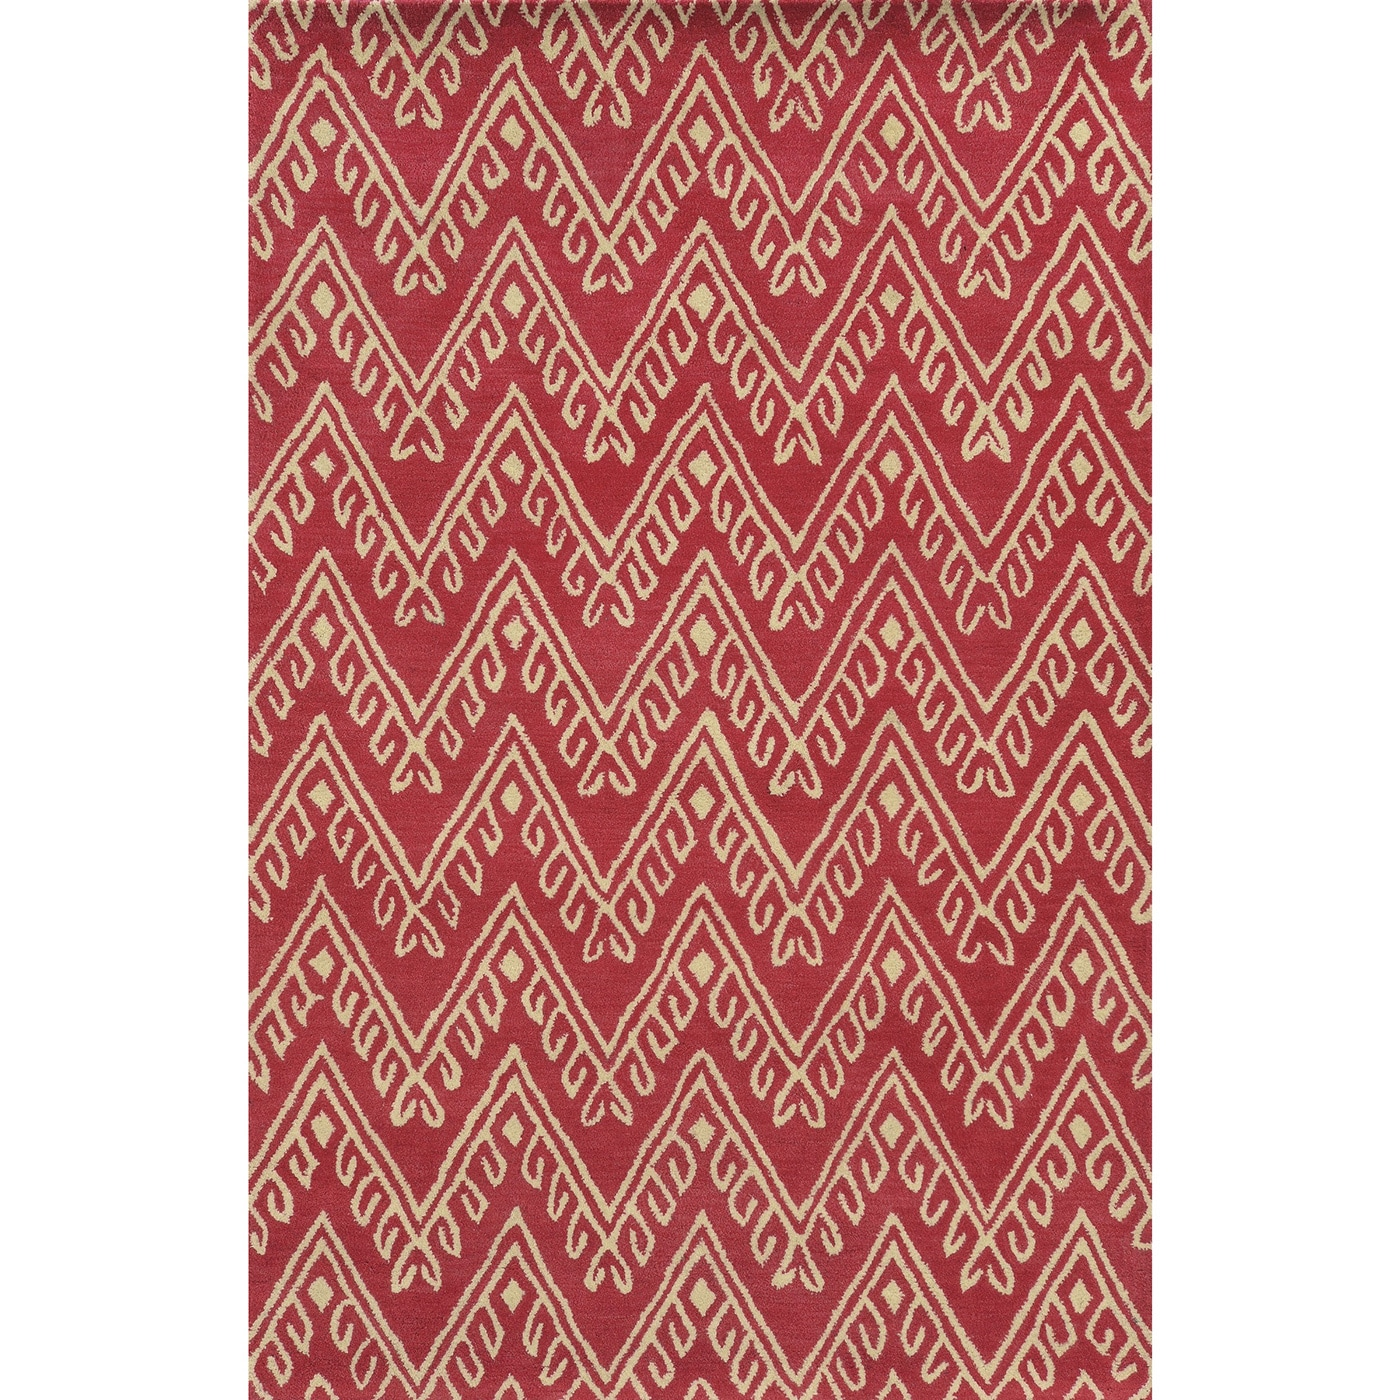 Rizzy Home Bradberry Downs Pink/ White Wool Accent Rug - 9' x 12'